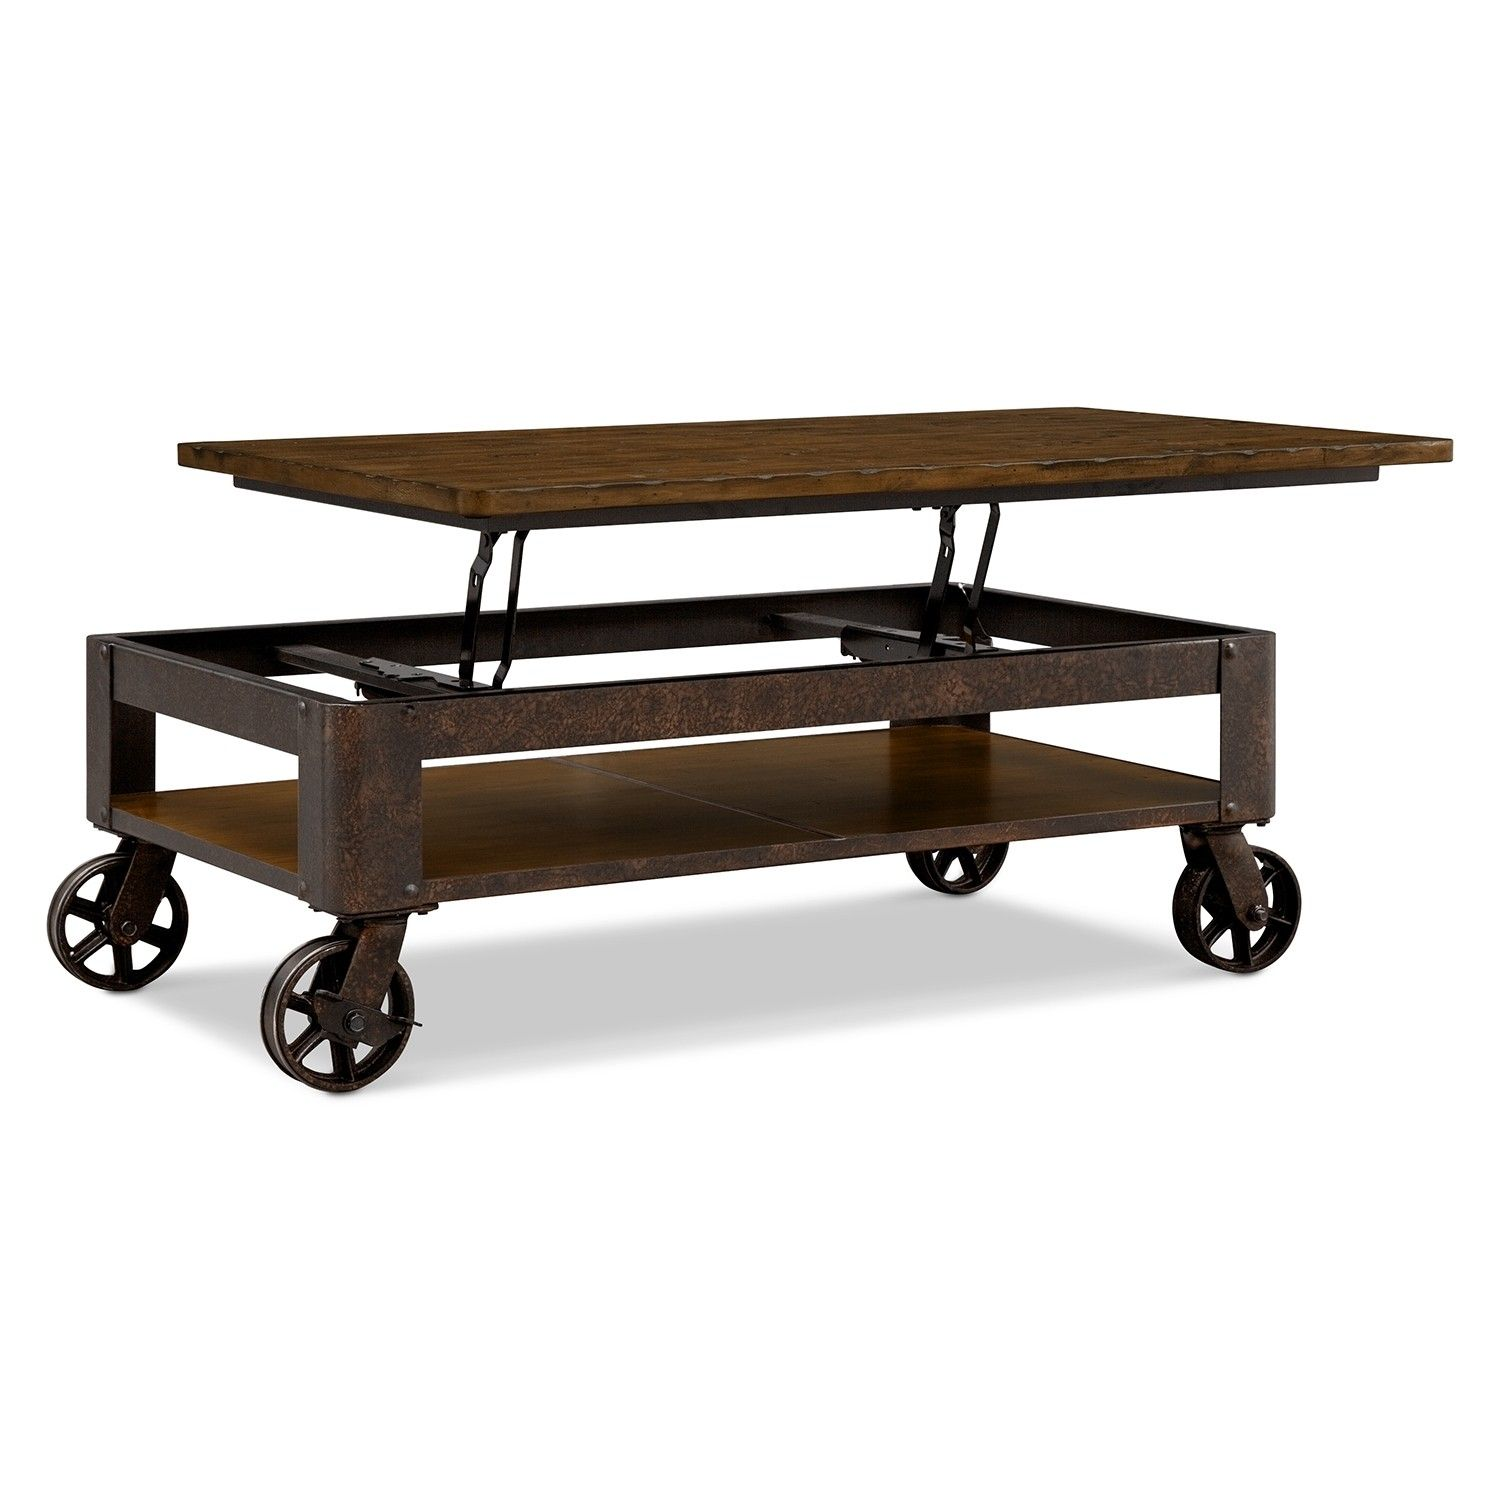 Industrial Adjustable Coffee Table with Wheeled Wood Iron Base also